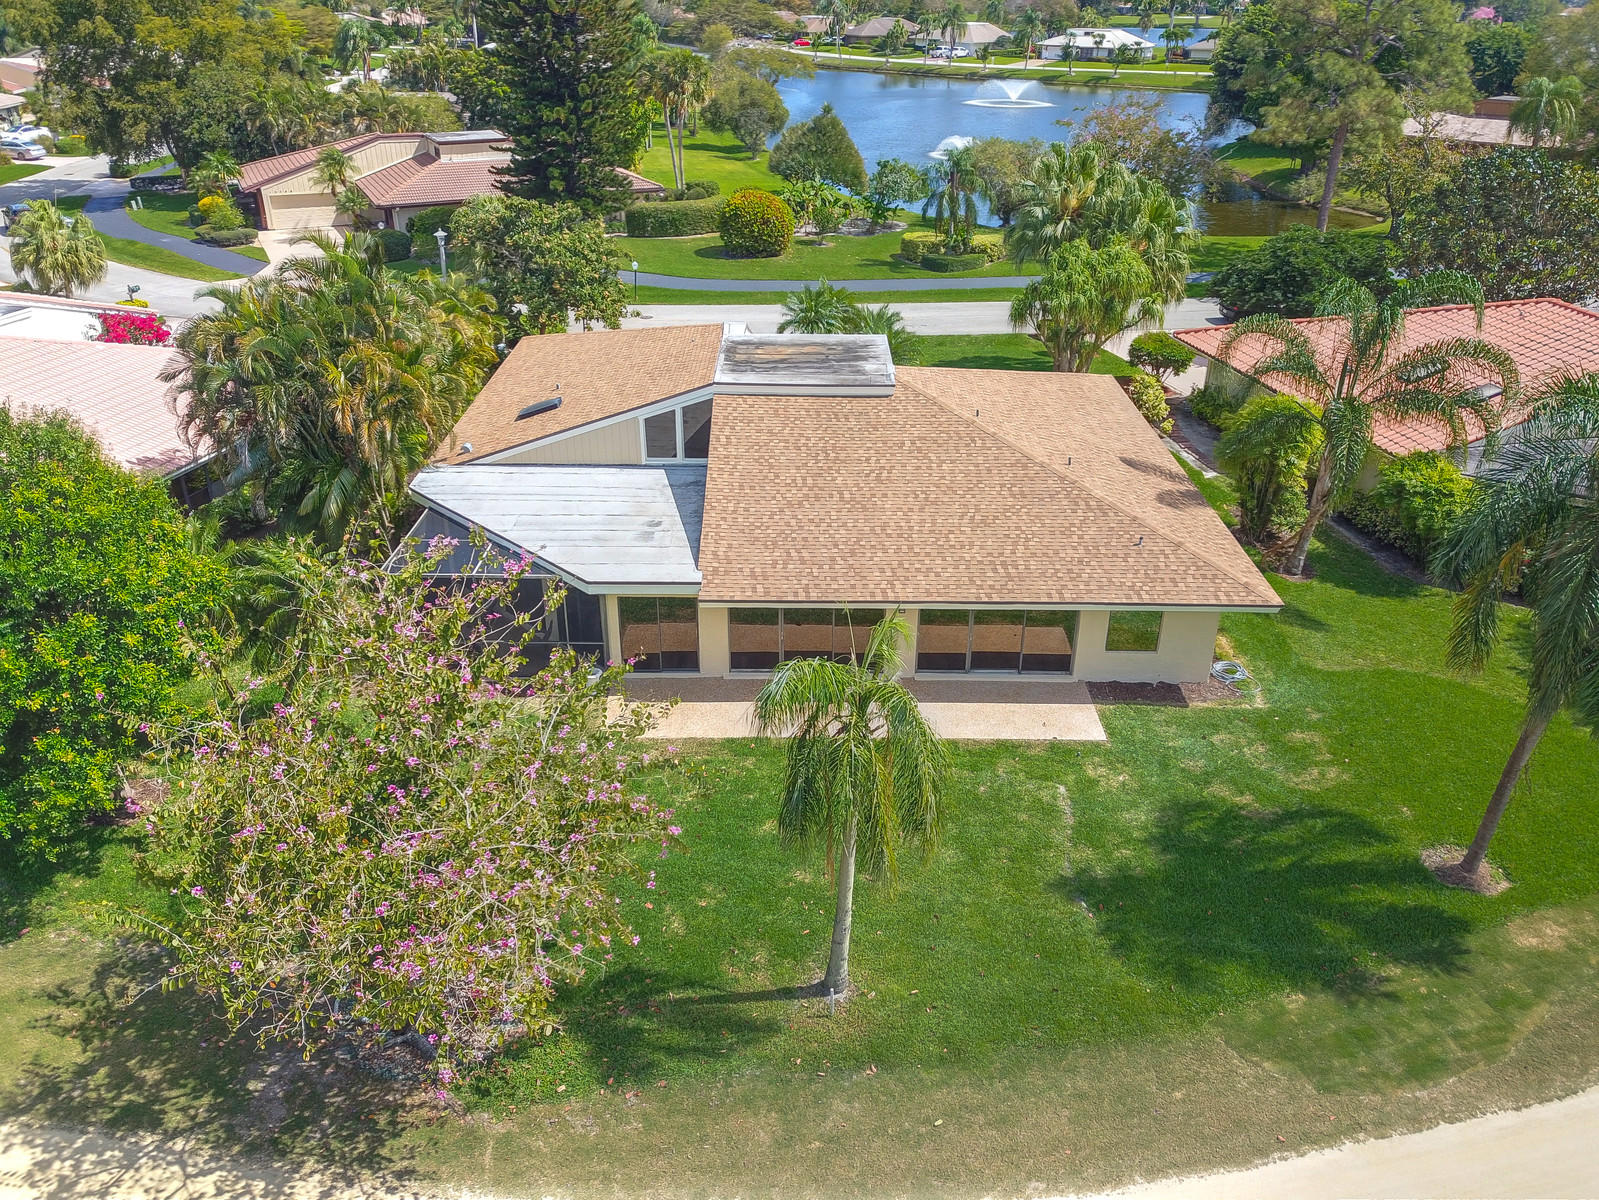 13796 Sand Crane Drive, Palm Beach Gardens, Florida 33418, 3 Bedrooms Bedrooms, ,2.1 BathroomsBathrooms,A,Single family,Sand Crane,RX-10512905